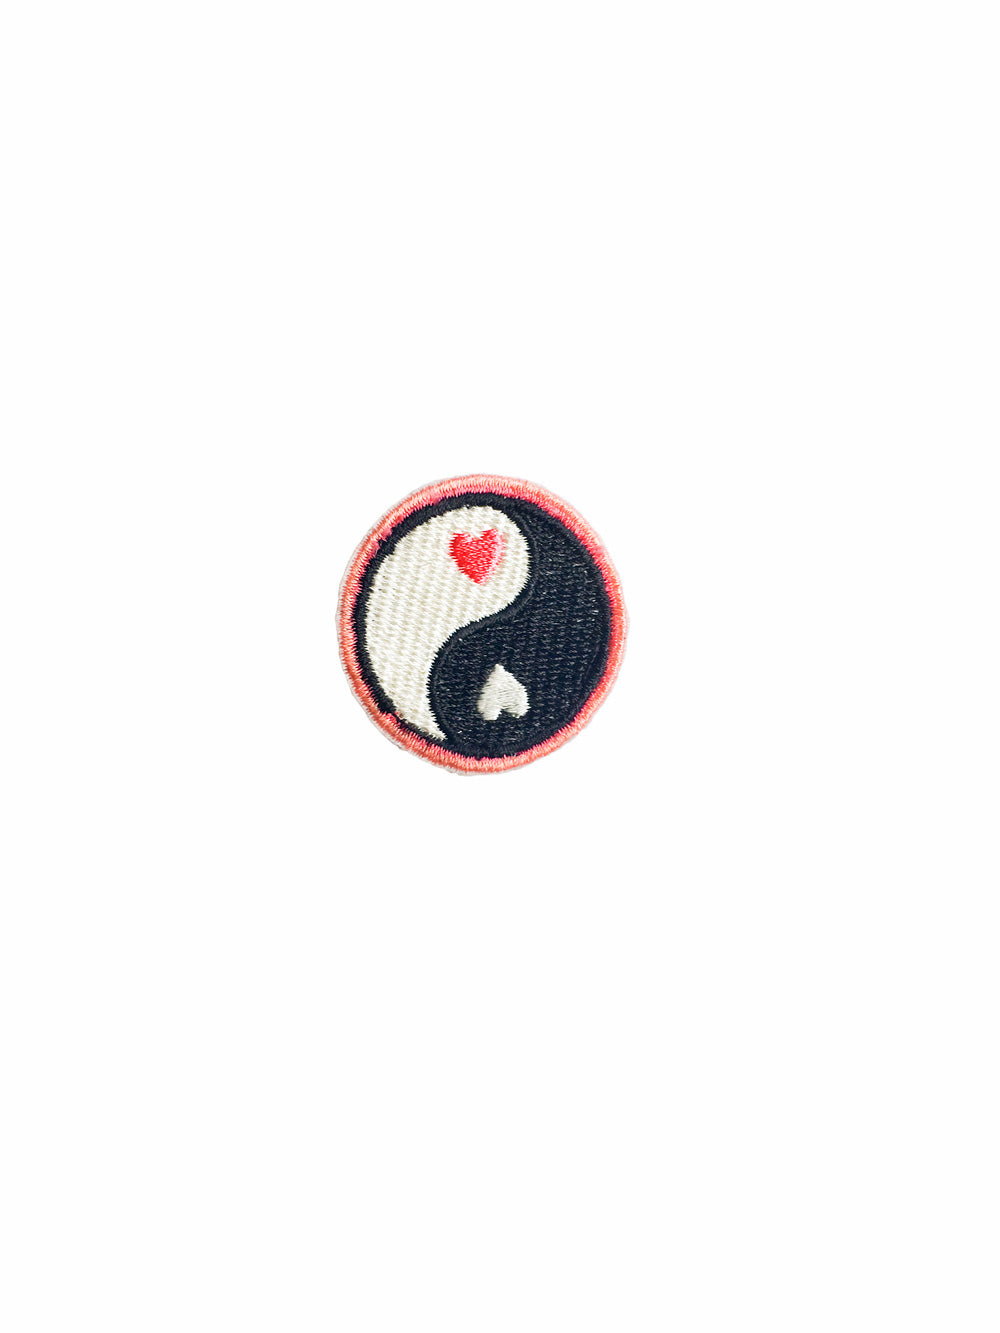 Heart Yin and Yang Iron on Patch